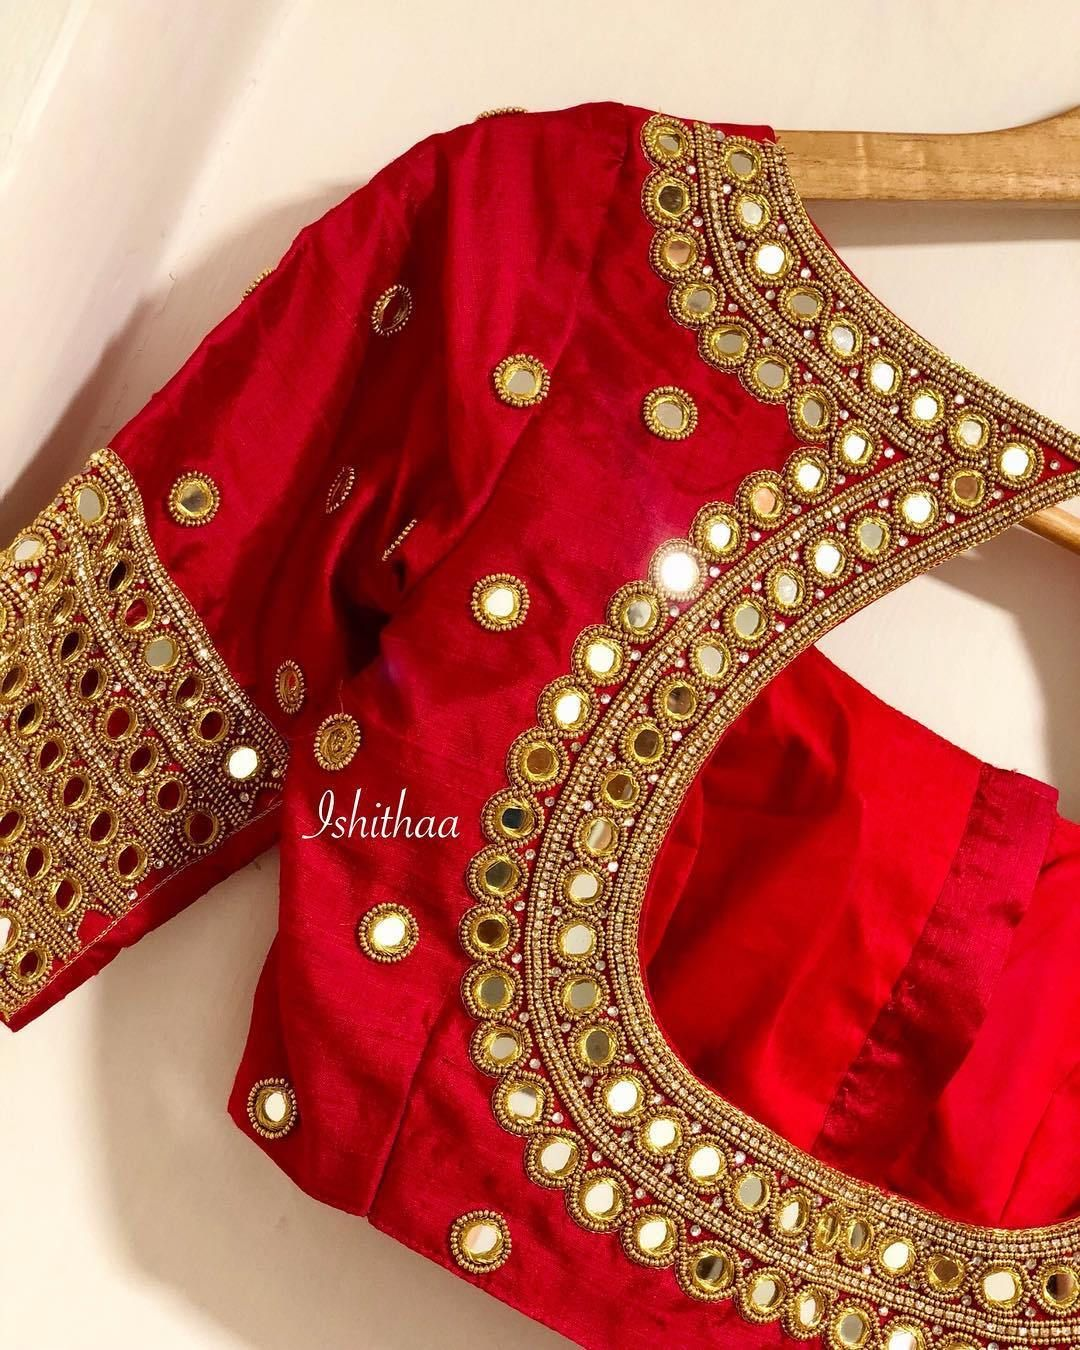 The Best Chennai Bridal Blouse Designers Just For You